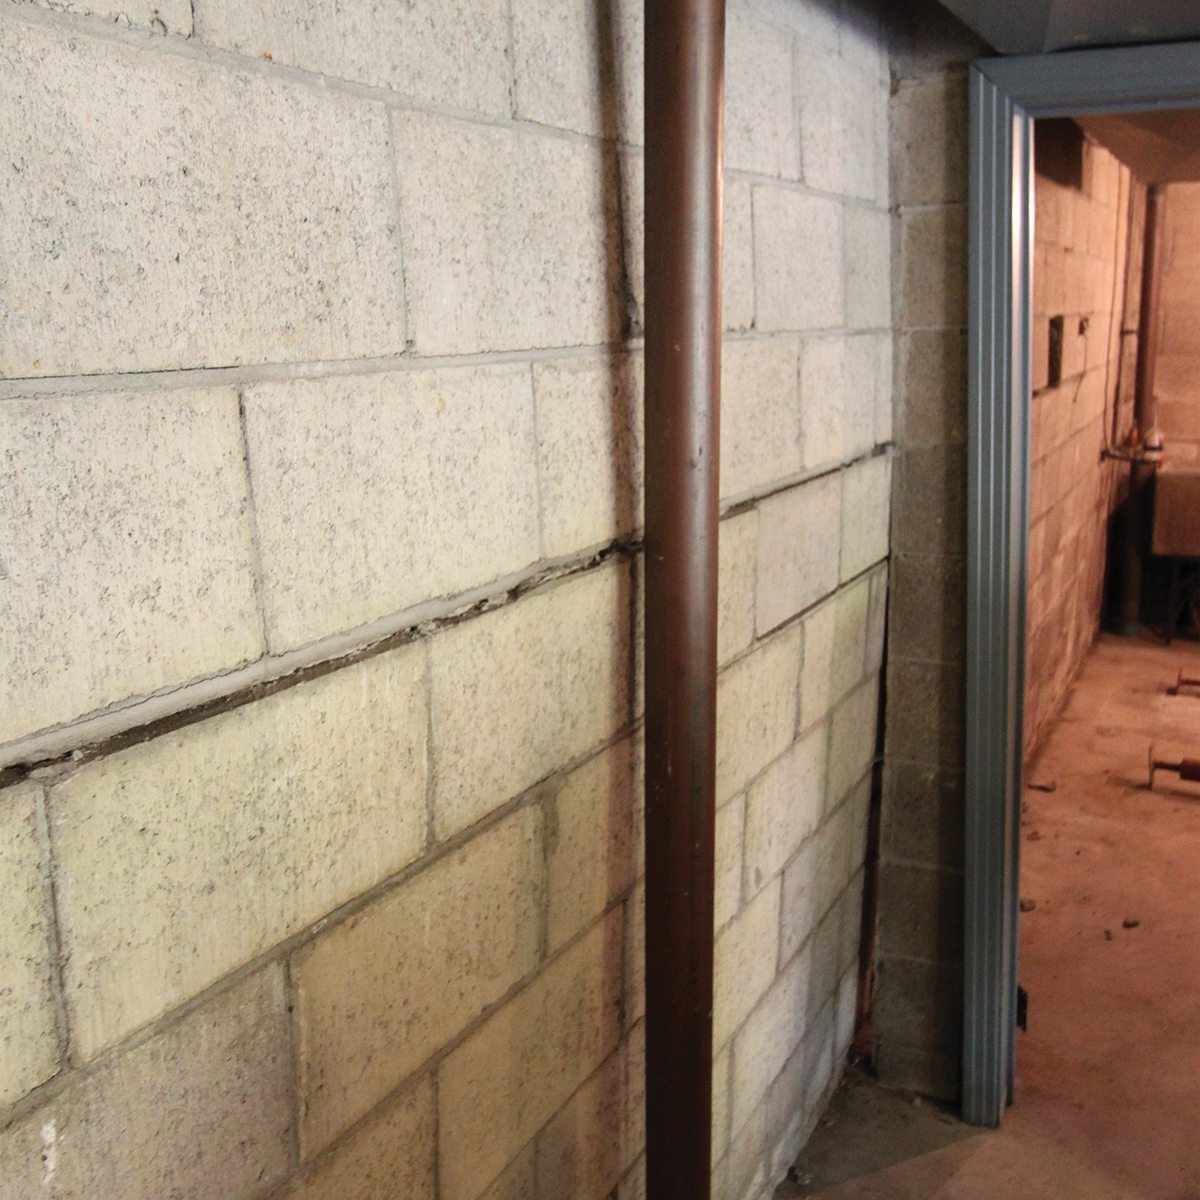 Bowing Basement Walls : repairing basement walls  - Aeropaca.Org